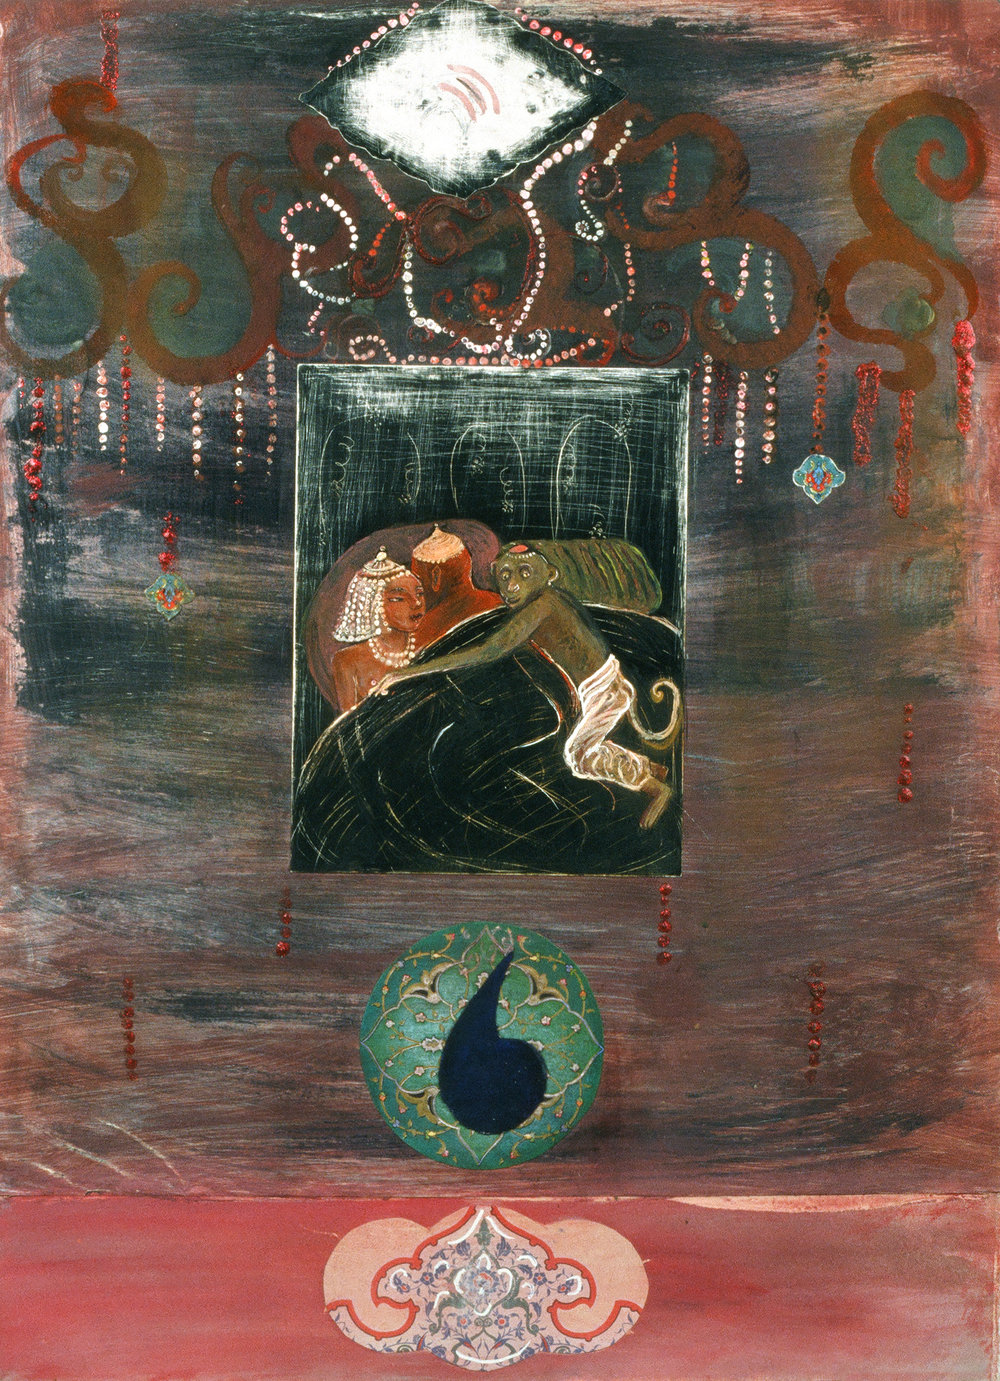 "A woman easily subdued, 30"" × 22"", mixed media and collage on paper, 1997"